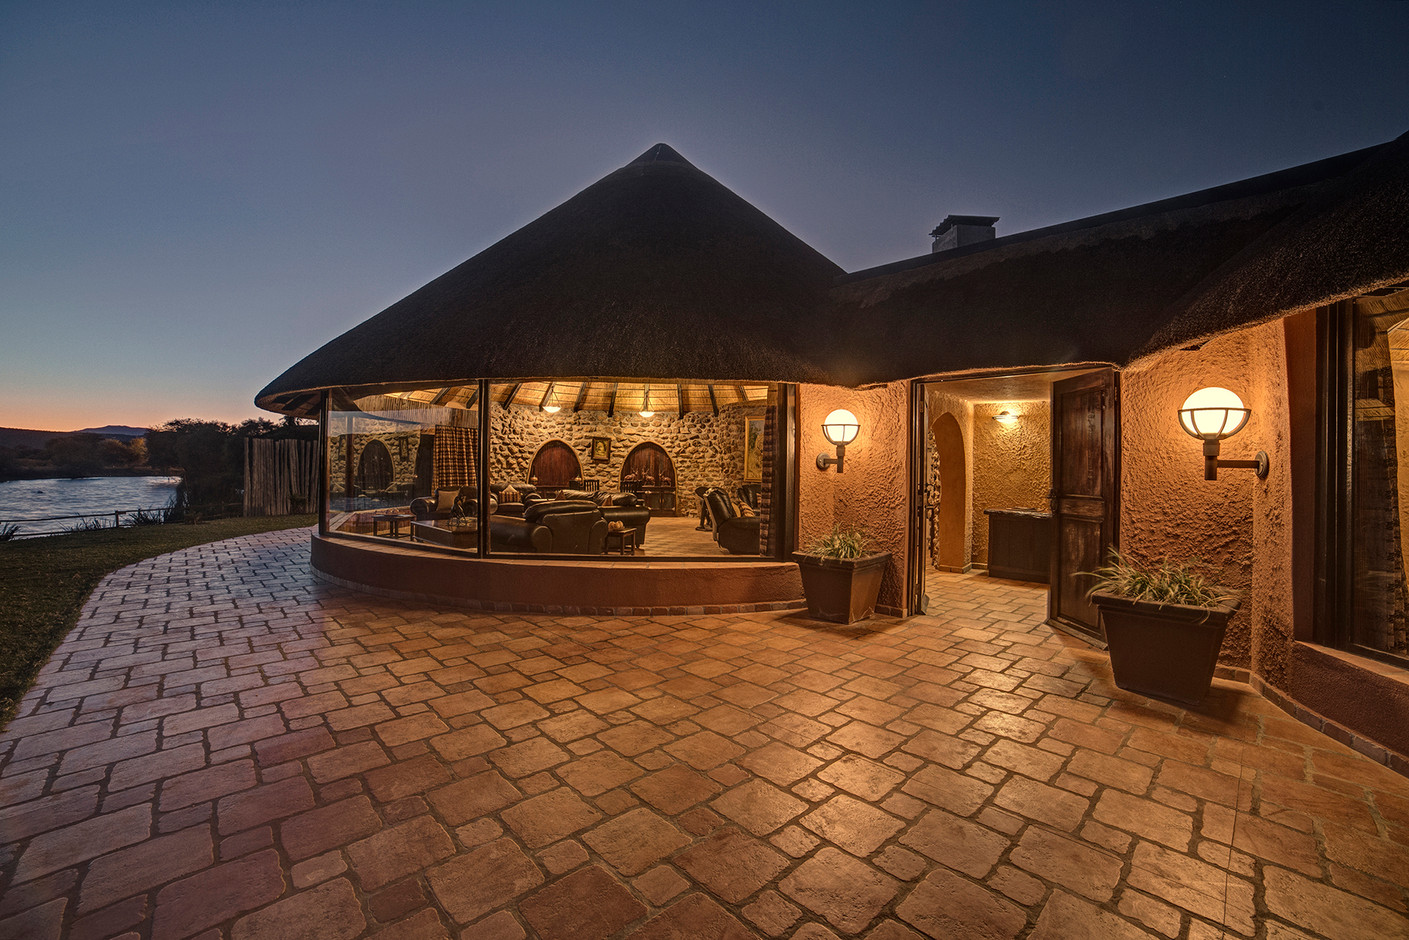 kat_hotels and lodges_0065.jpg